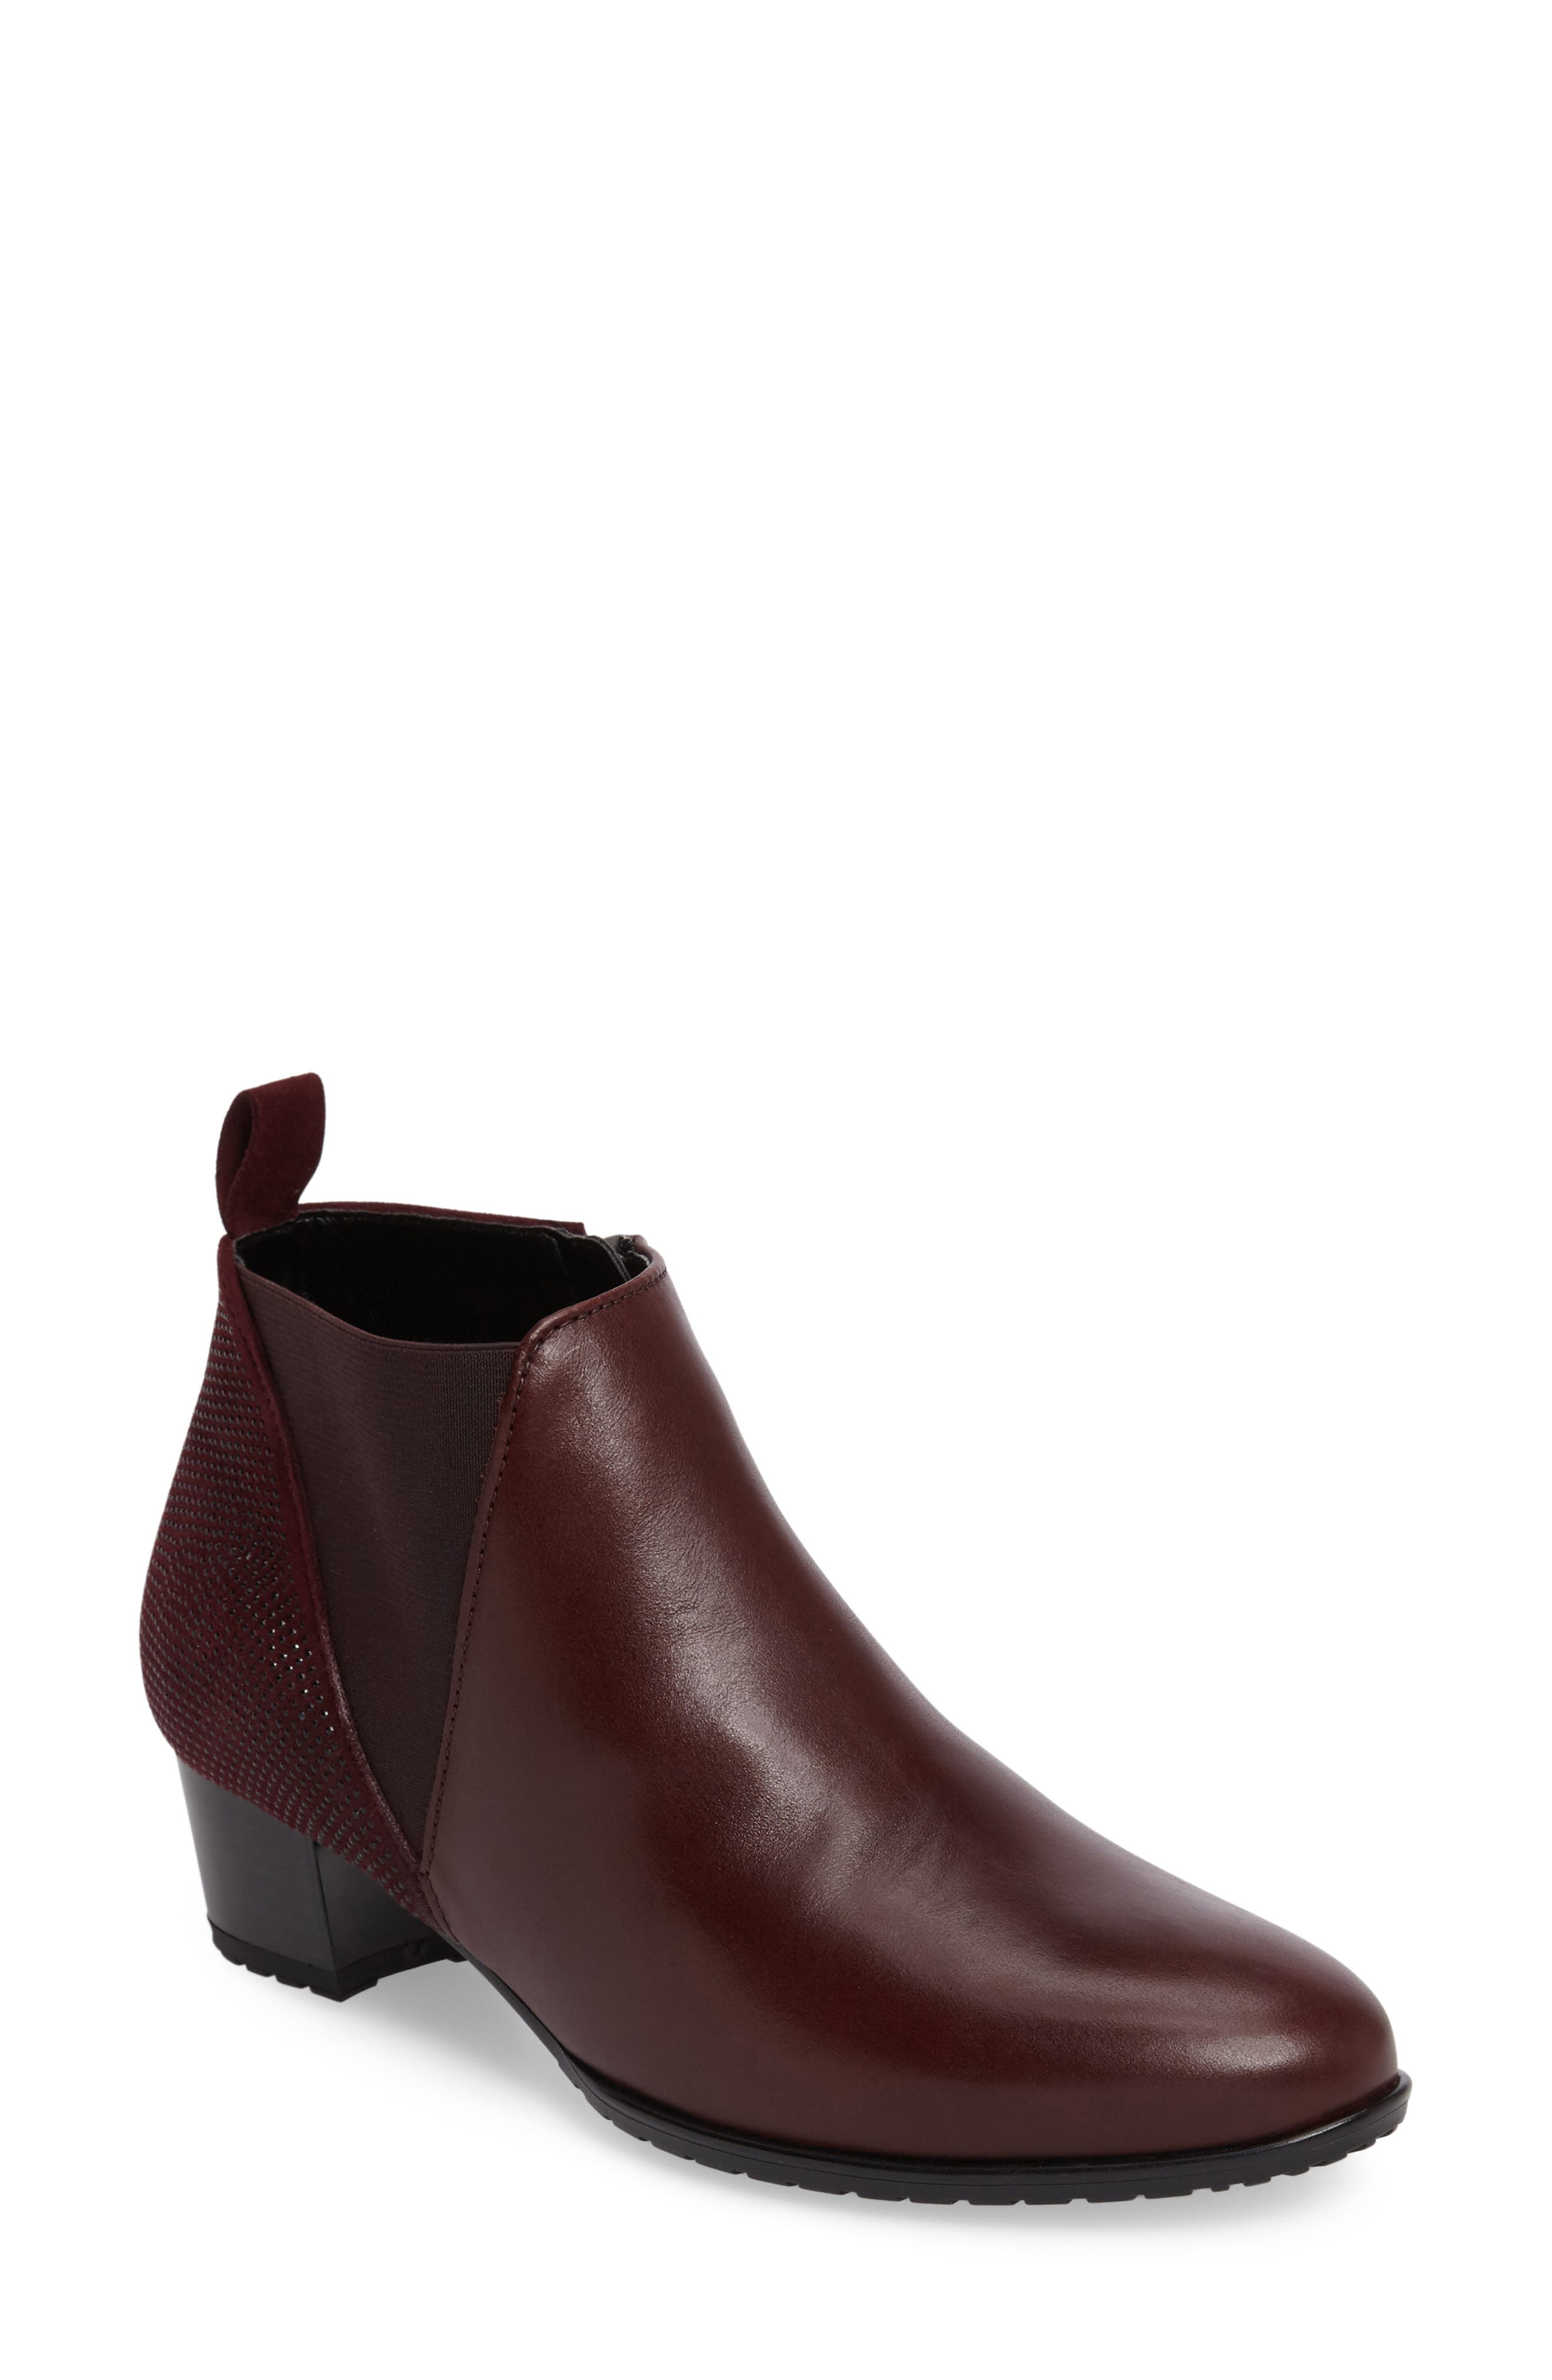 ARA 'Patty' Block Heel Boot, Main, color, BURGUNDY LEATHER